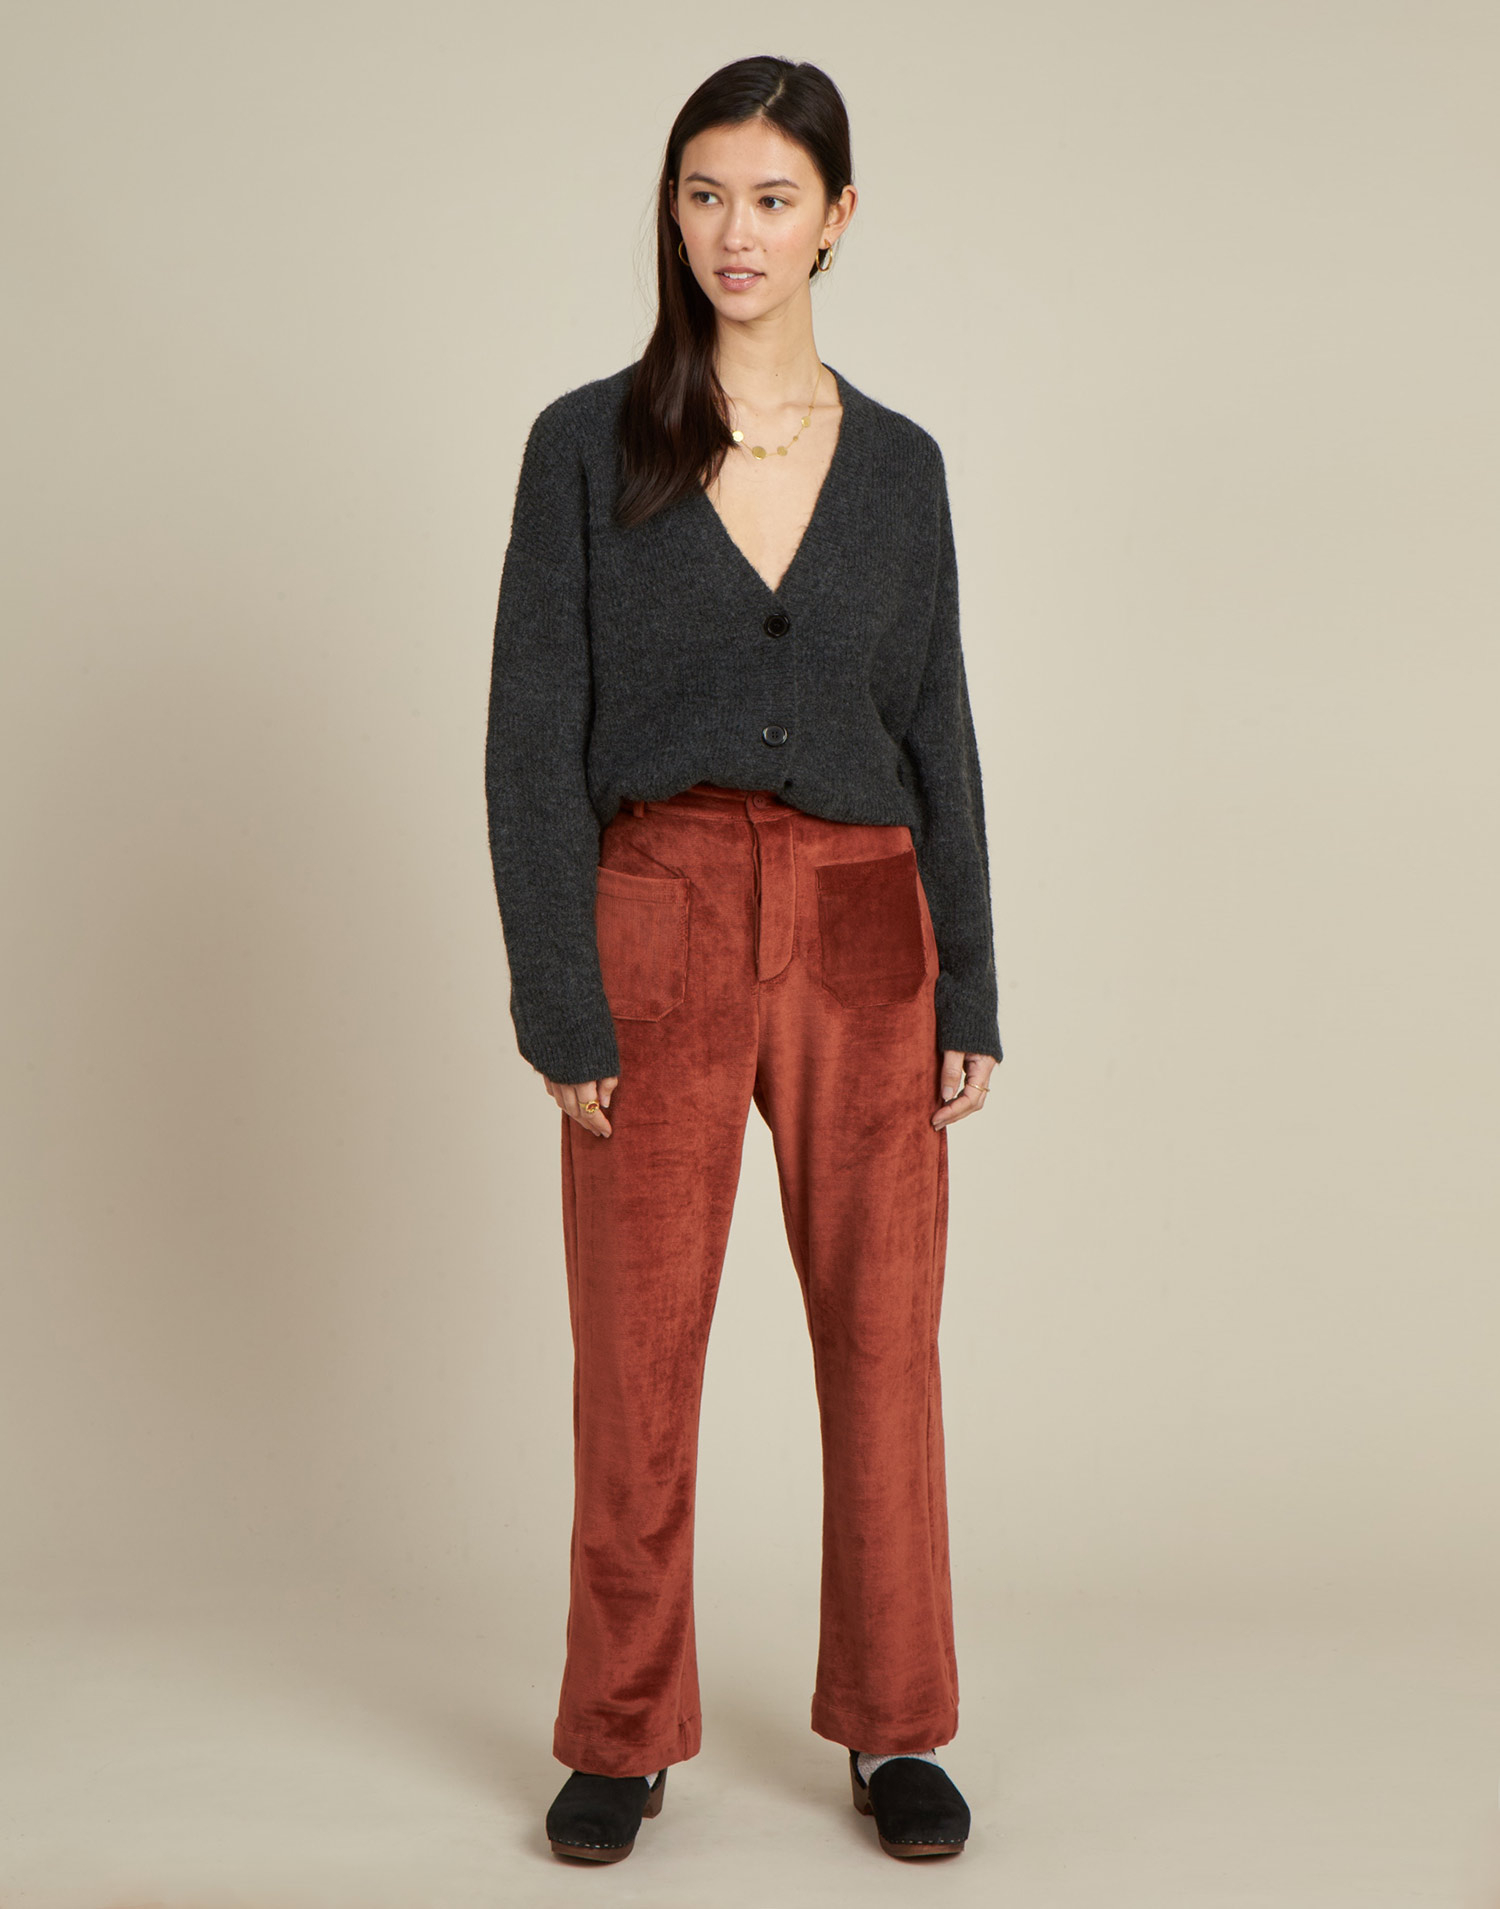 ribbed ttrousers with pockets